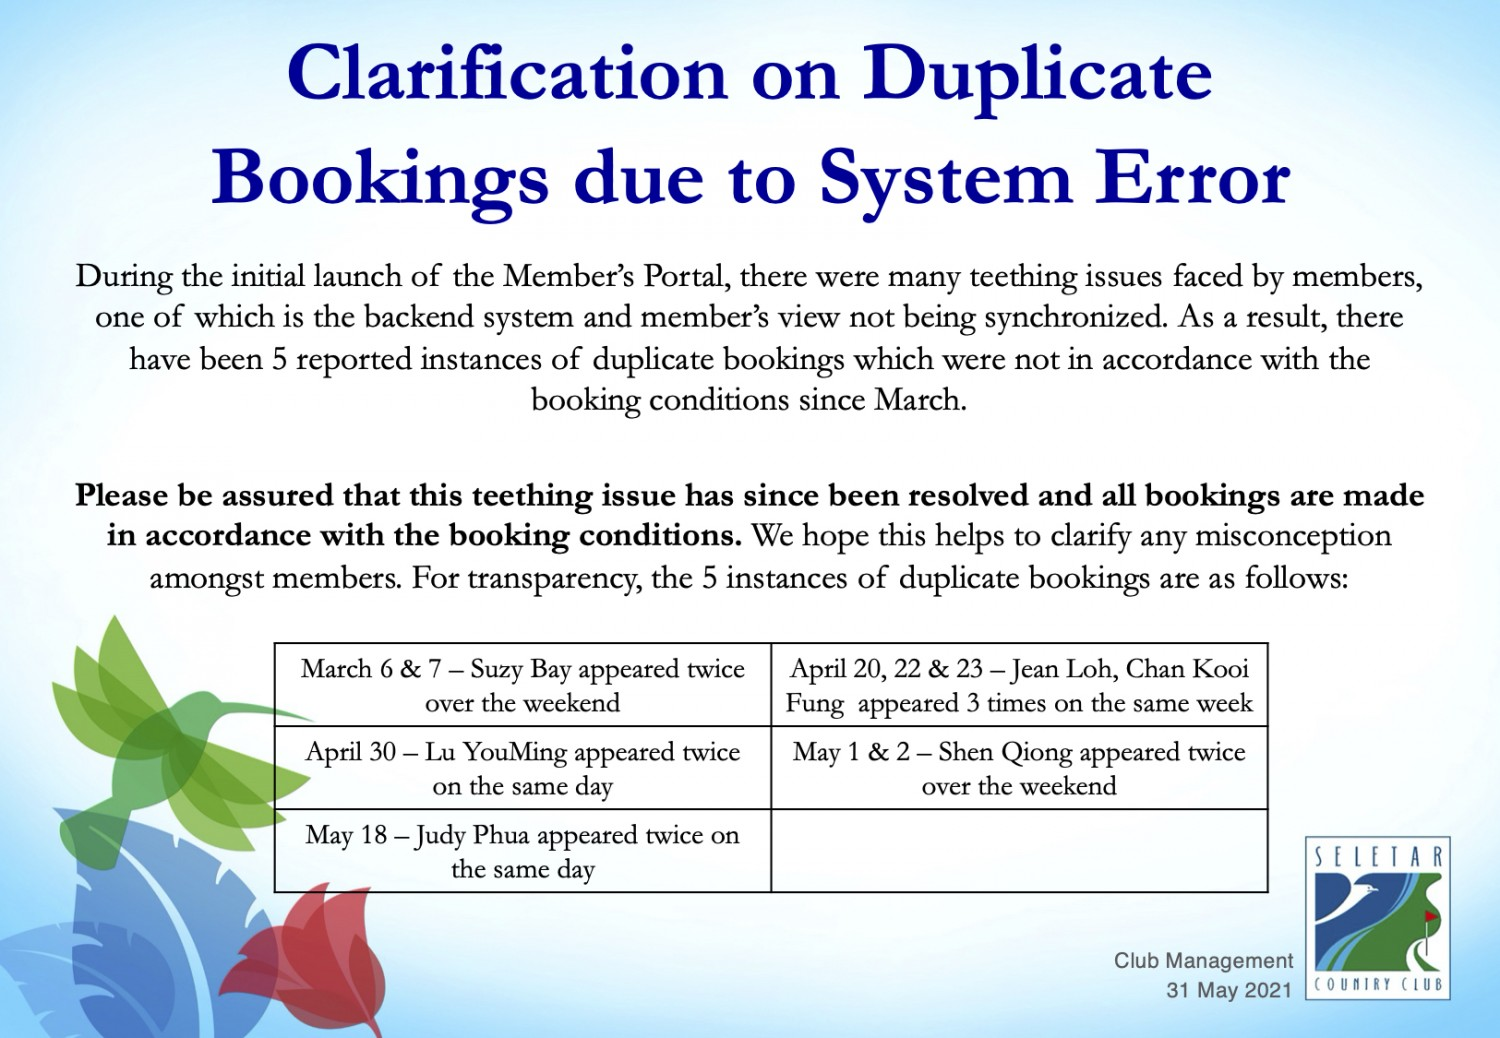 20210531_Clarification on Duplicate Bookings